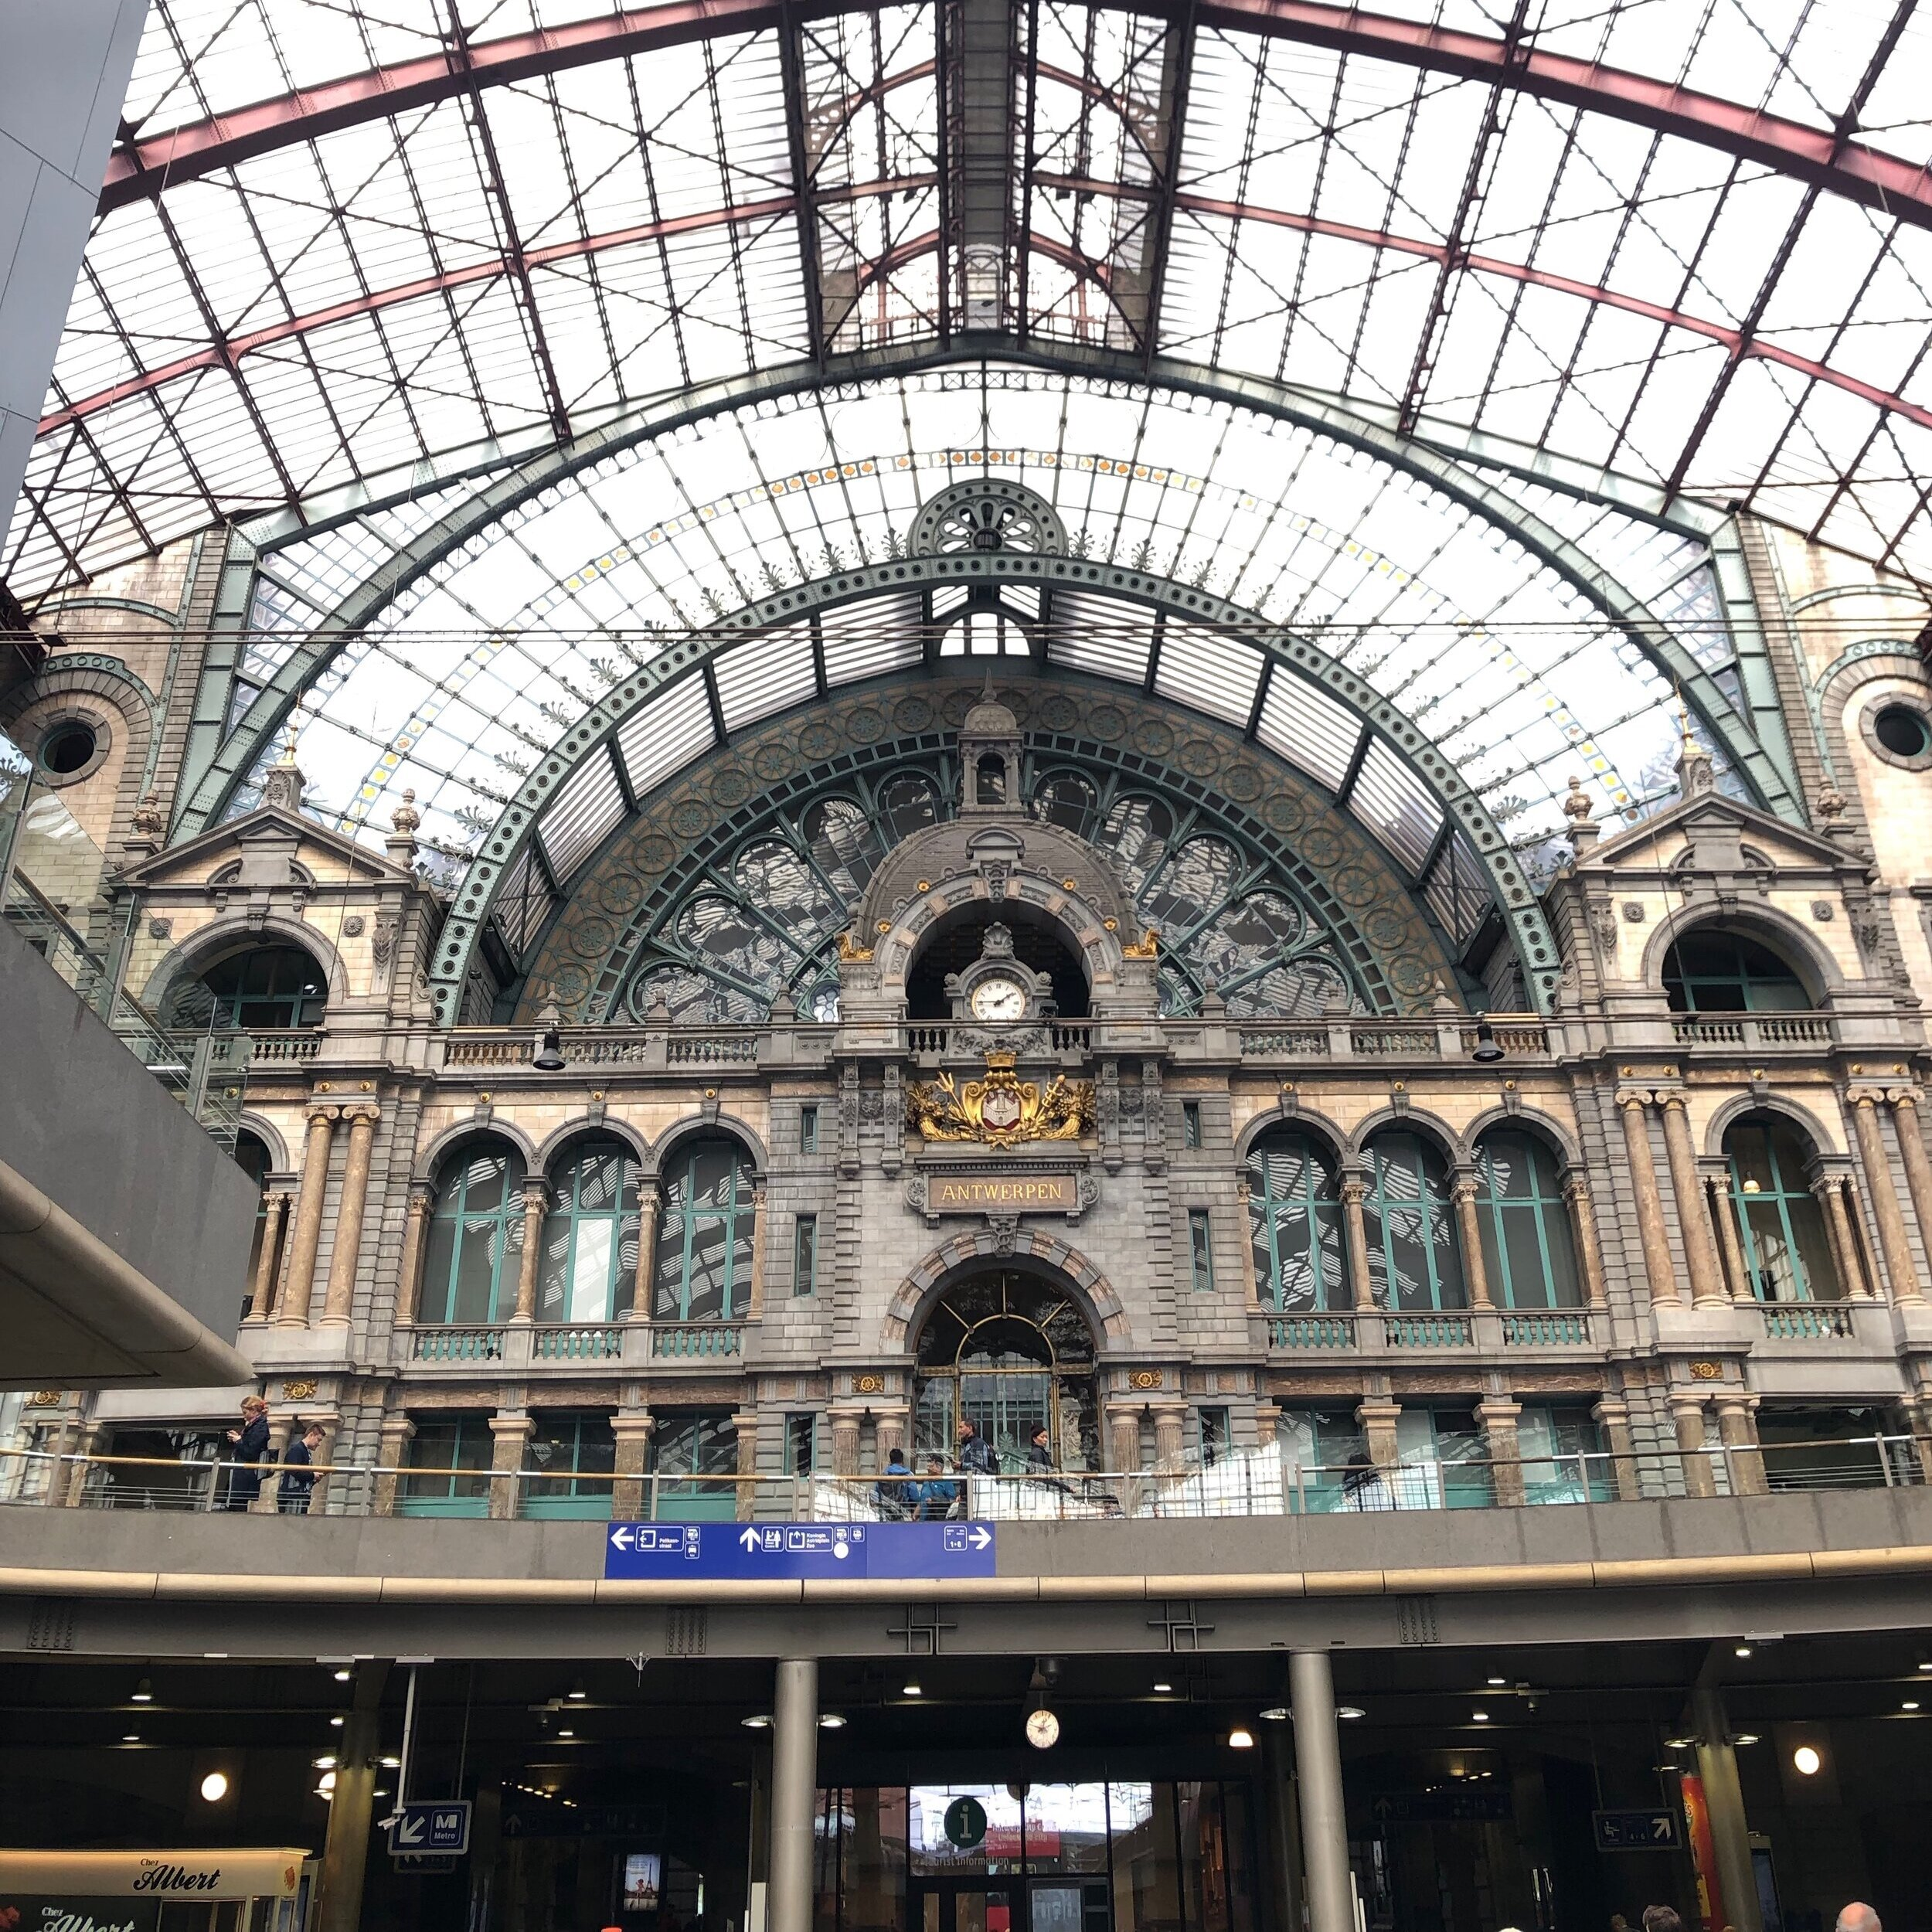 Antwerp Central Station